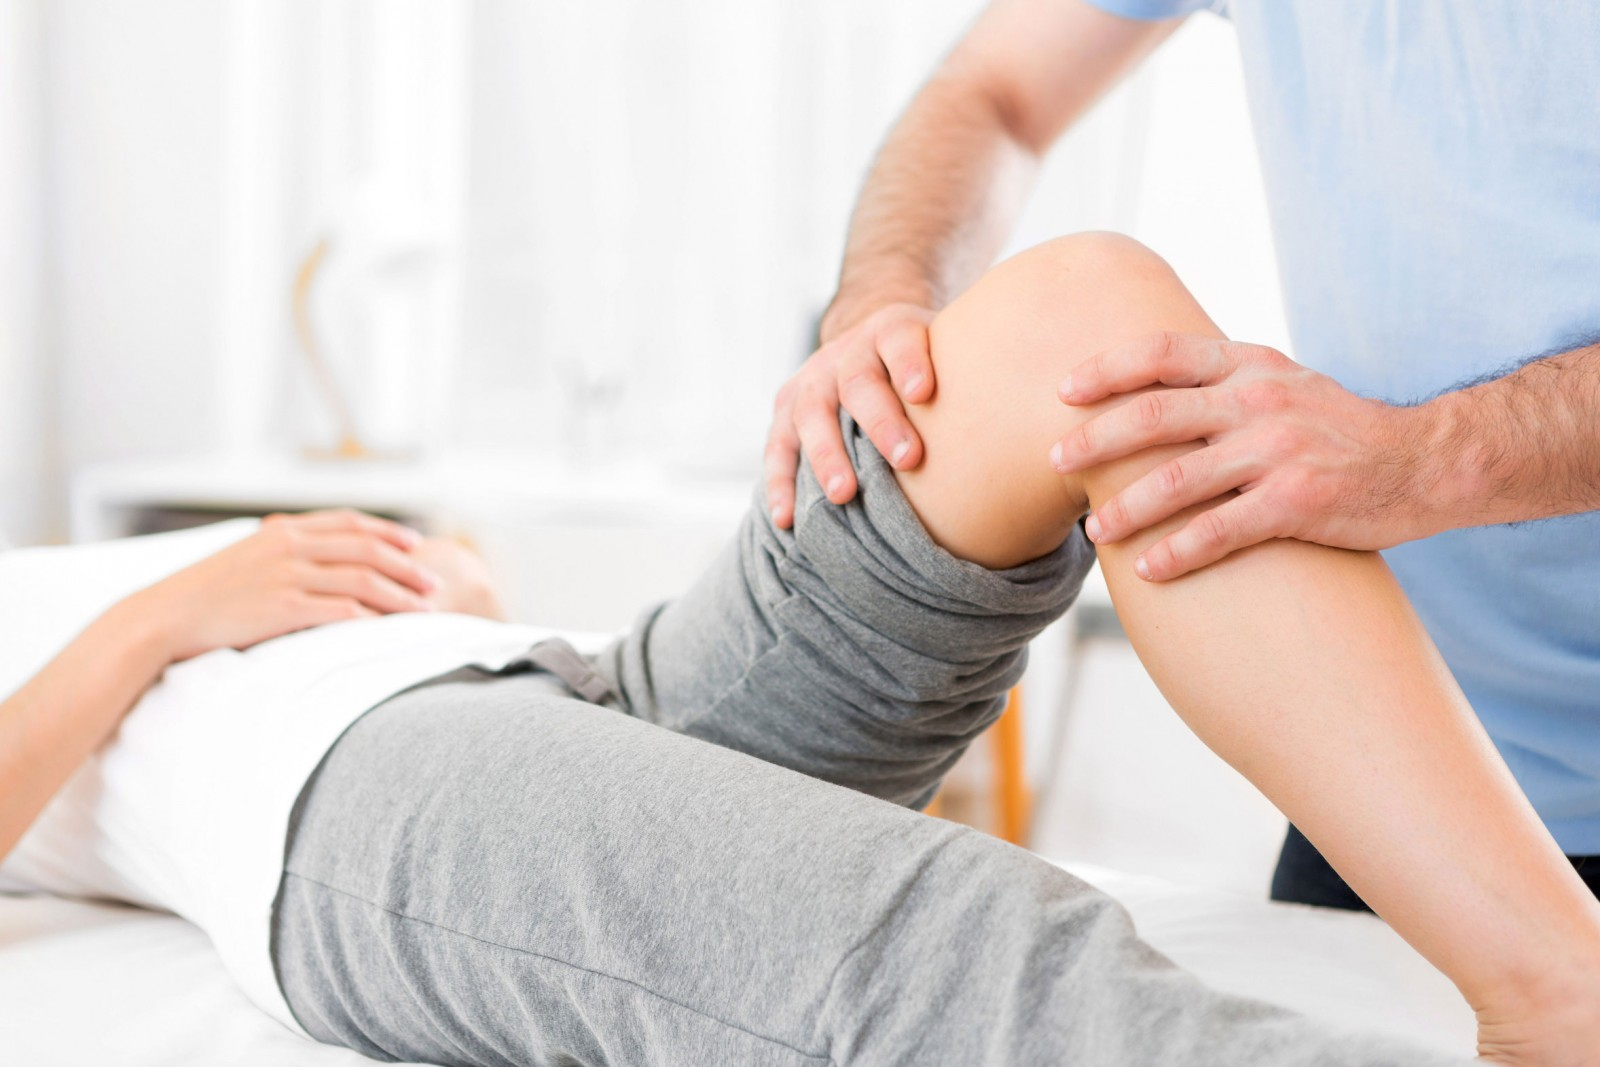 What to do when physiotherapy doesn't work